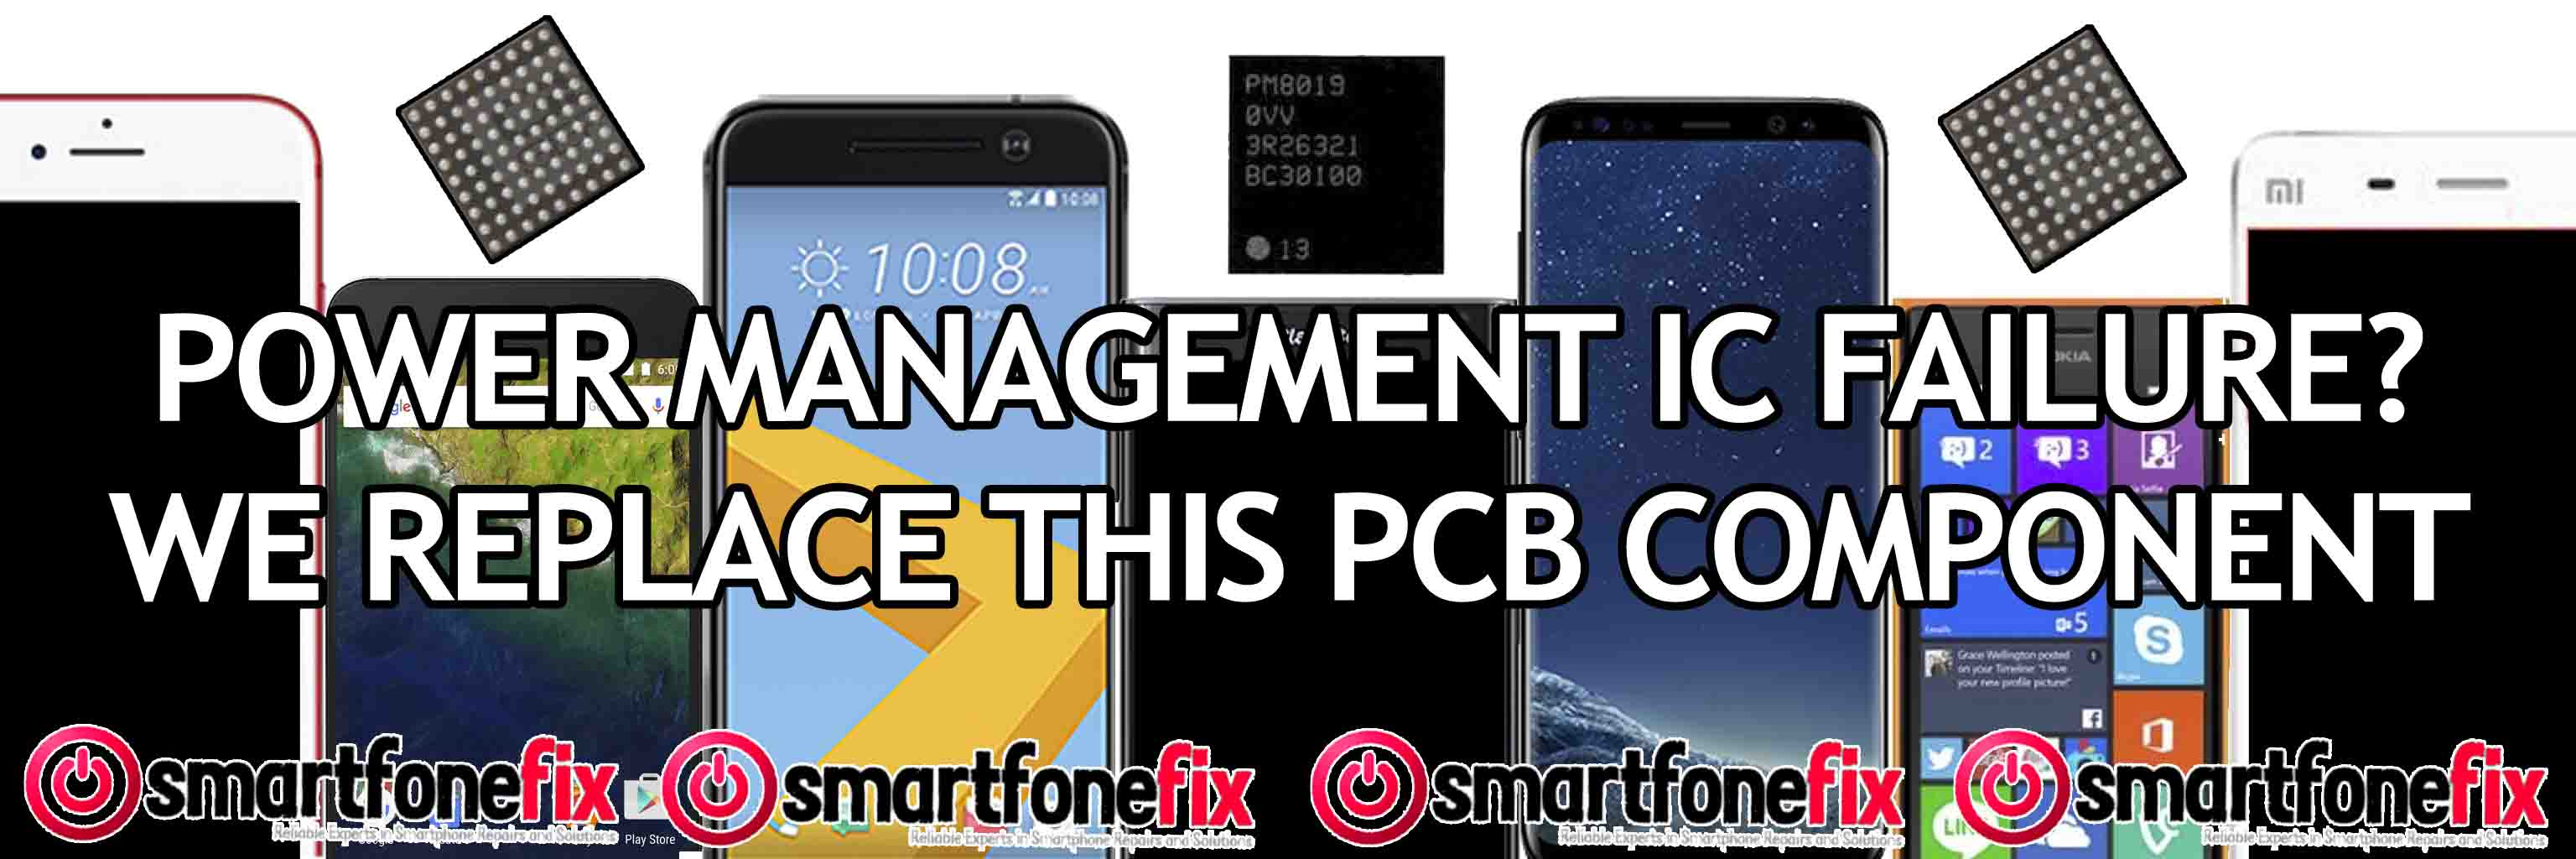 Smartphone Pmic Power Management Ic Repair Services Uk Simple Integrated Circuit We Like To Keep Things Here At Smartfonefix This Is Why Offer Fixed Price Repairs On All